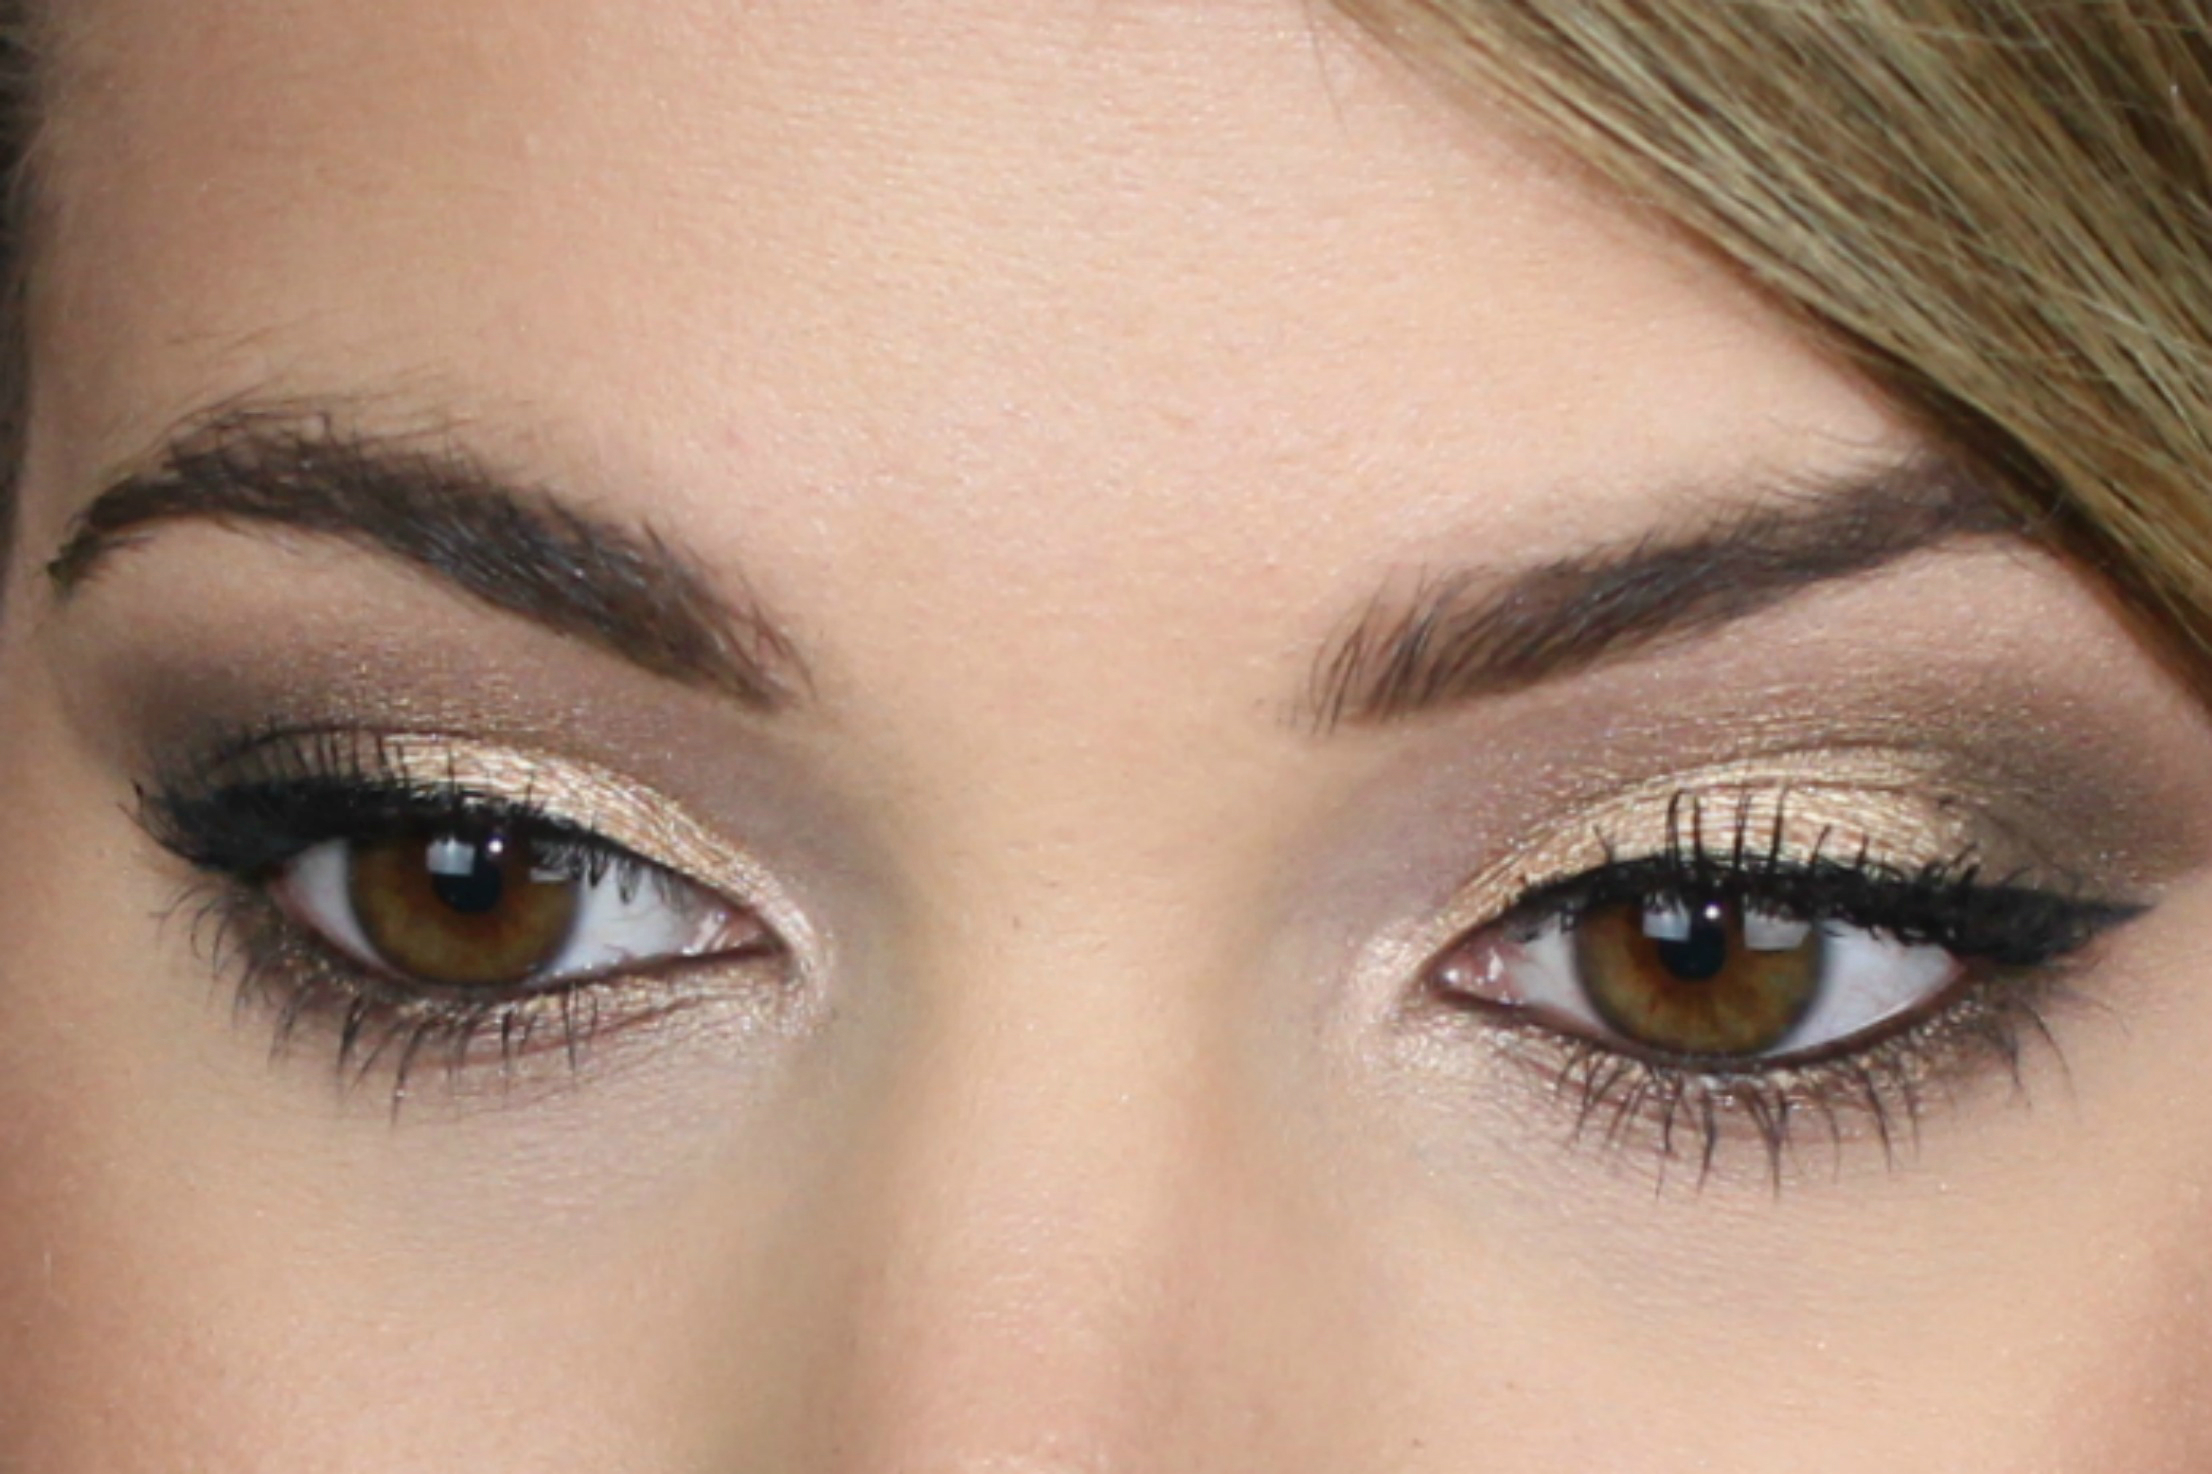 Easy Urban Decay Naked Looks Using Two Brushes on Brighterdarling.com